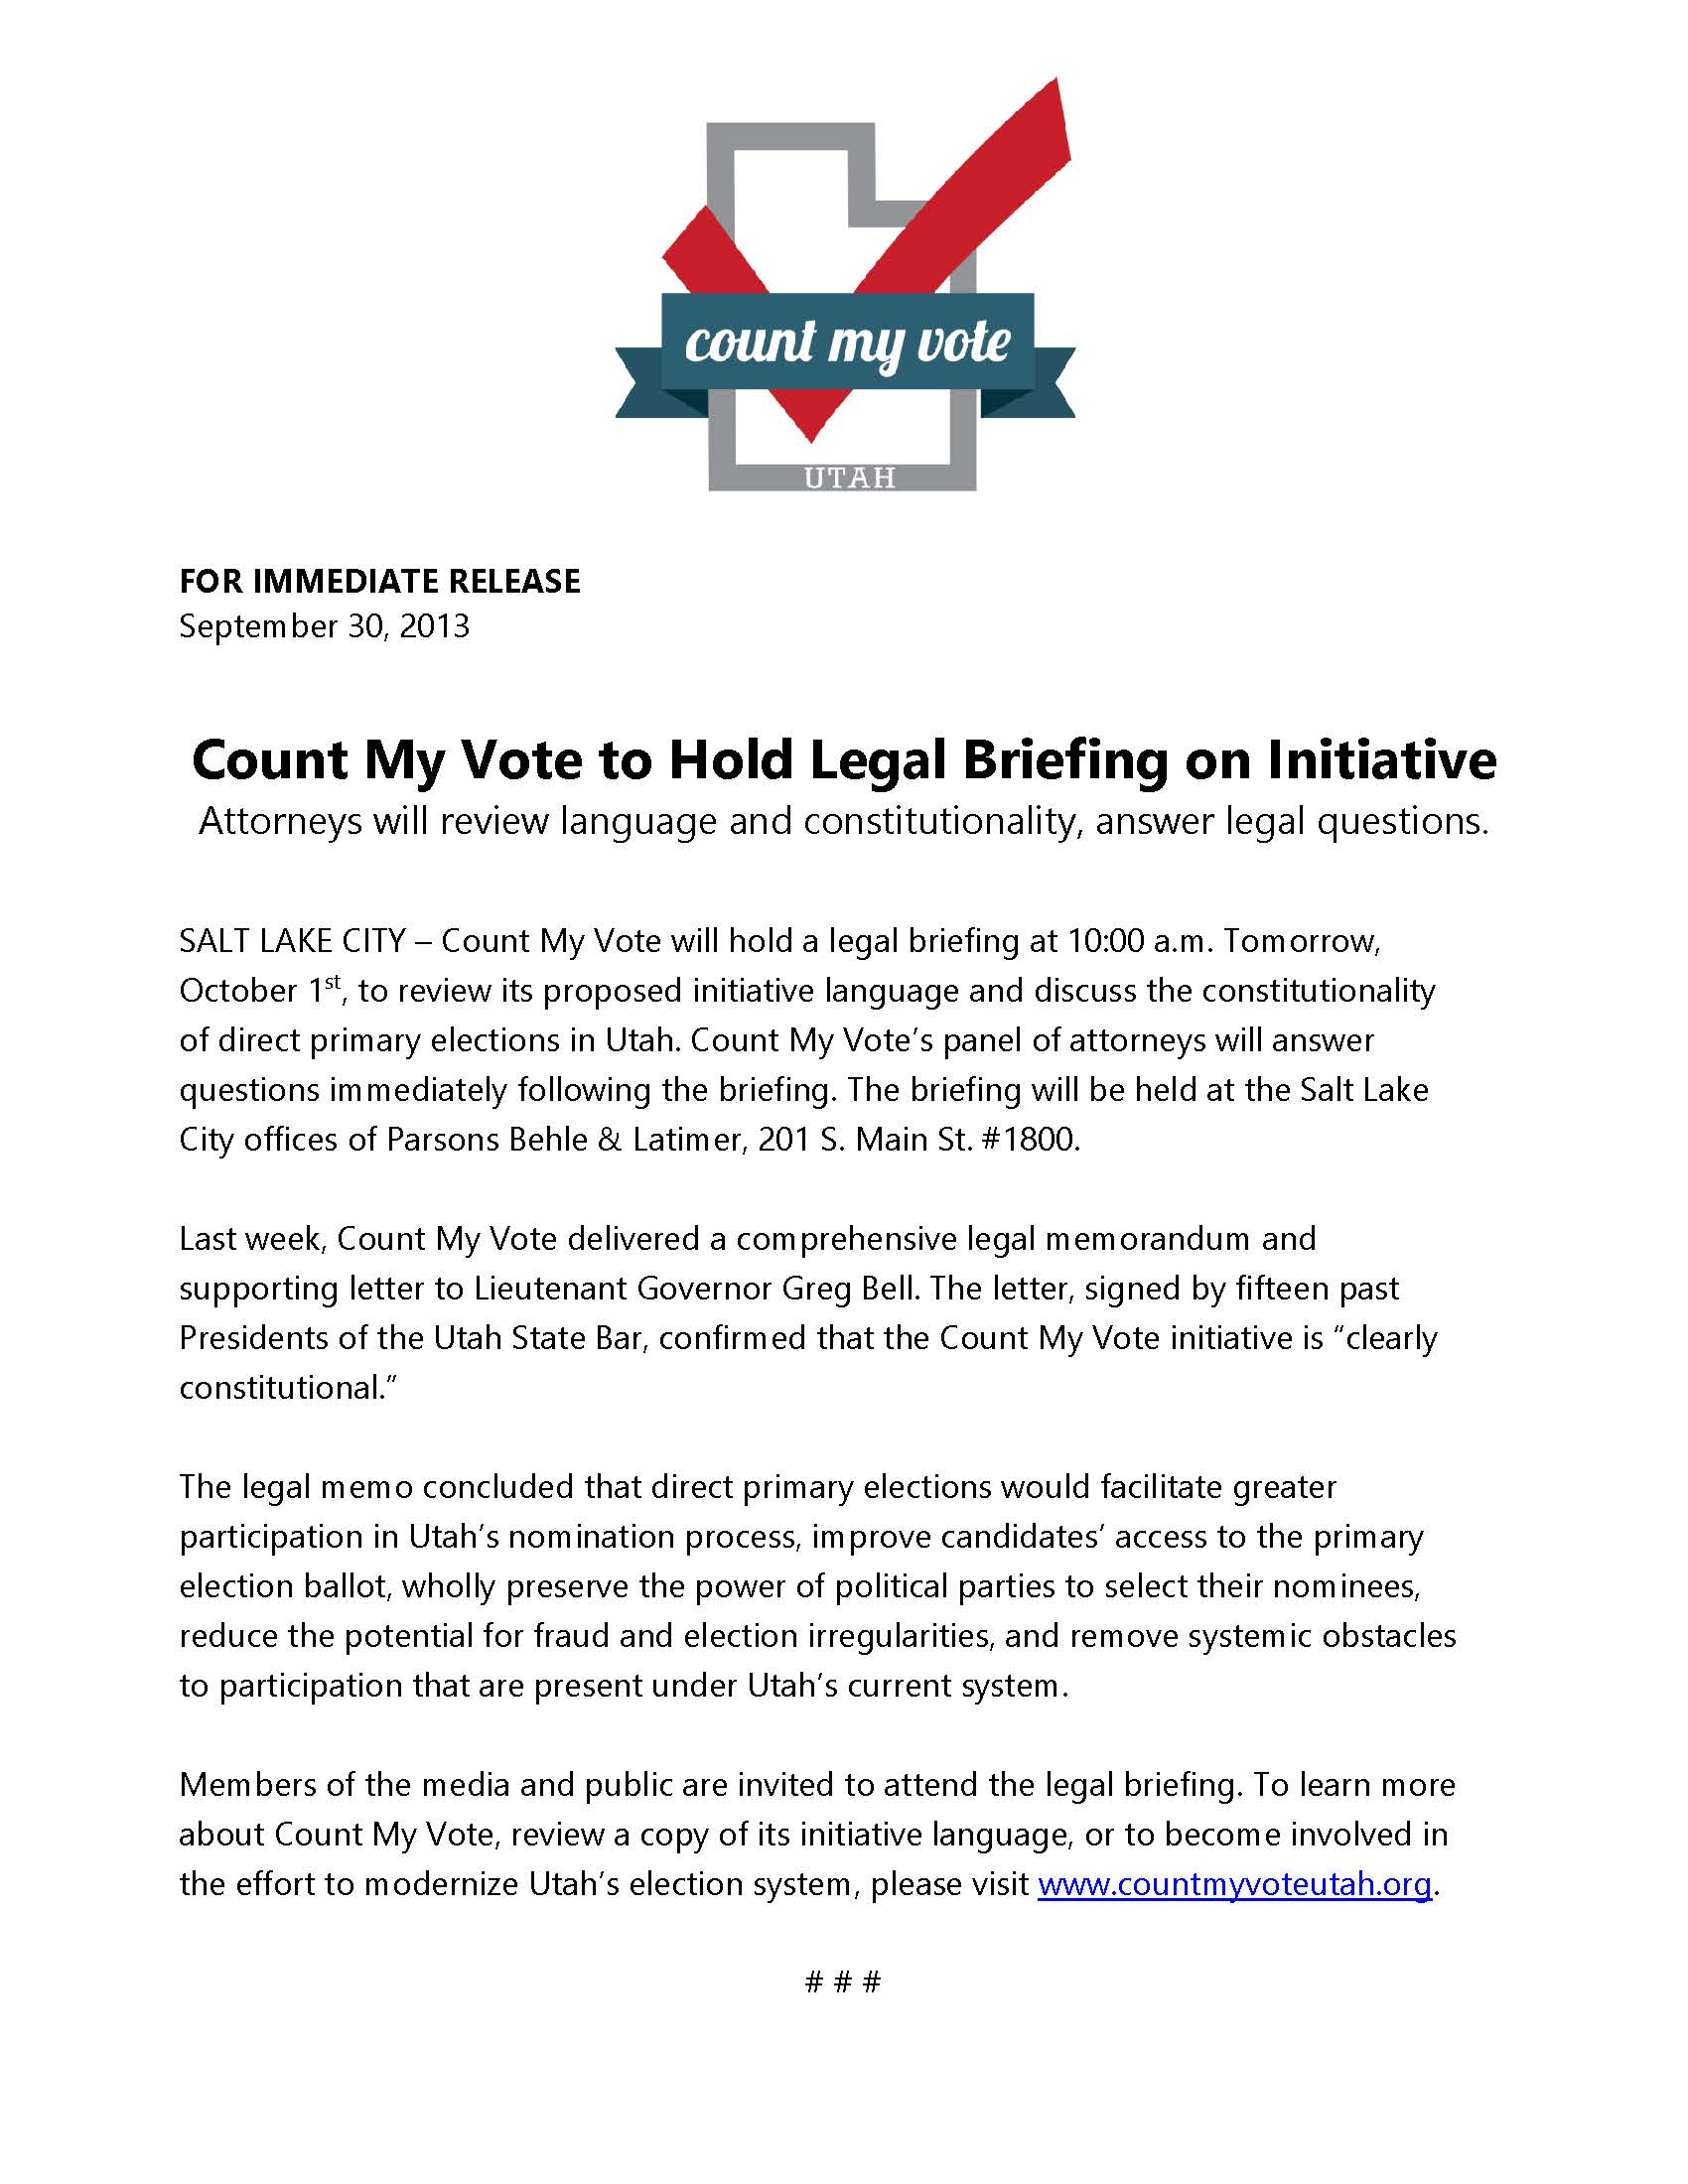 Count My Vote to Hold Legal Briefing.jpg